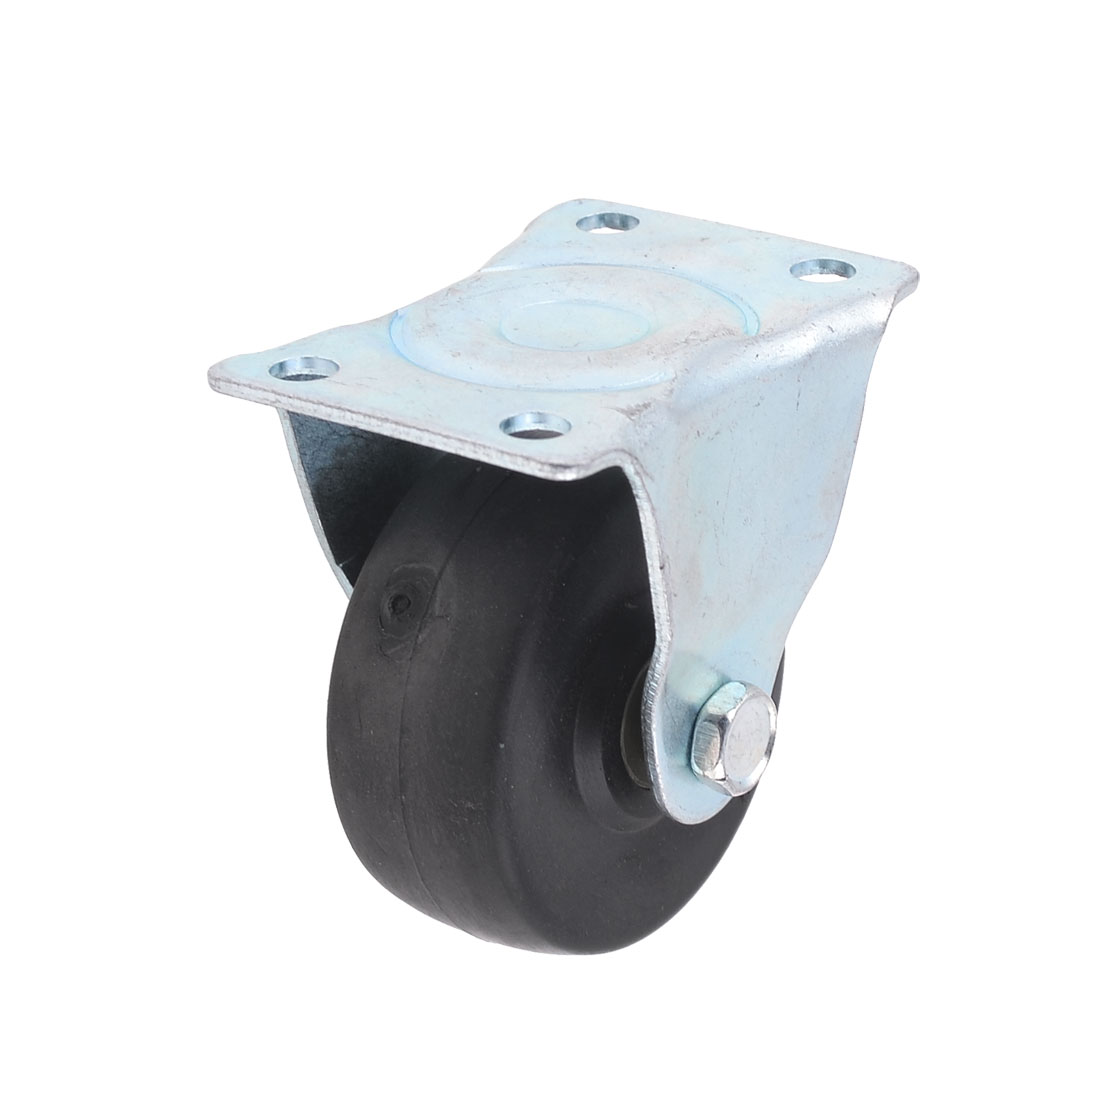 "Sickbed Laundry Cart Swivel Plate 2"" Dia PP Wheel Metal Plate Caster"